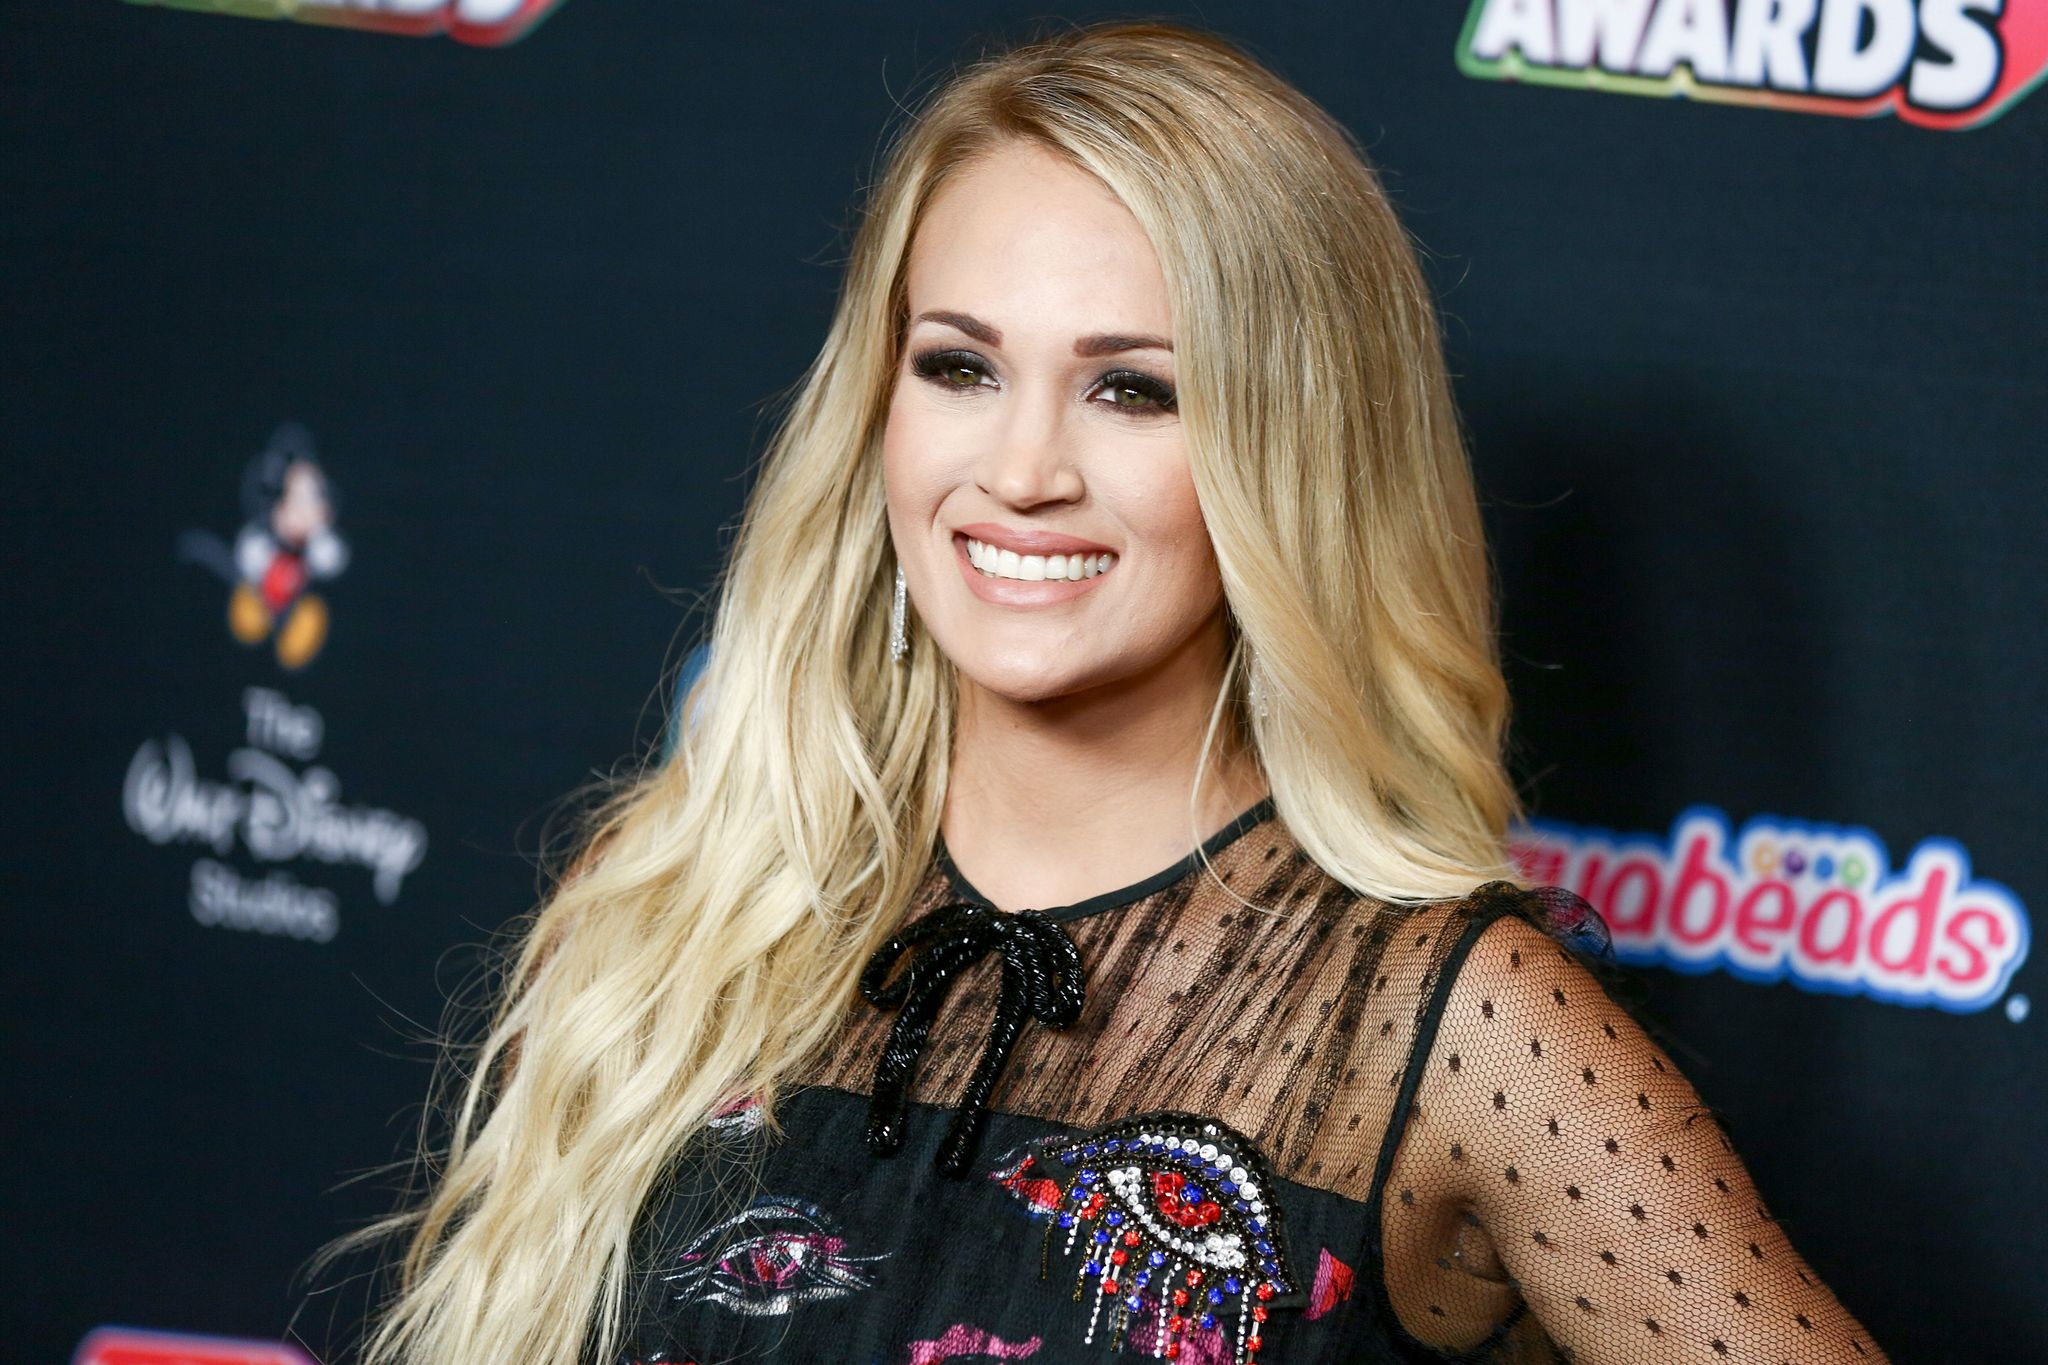 Carrie Underwood attends the 2018 Radio Disney Music Awards at Loews Hollywood Hotel on June 22, 2018 | Photo: Getty Images